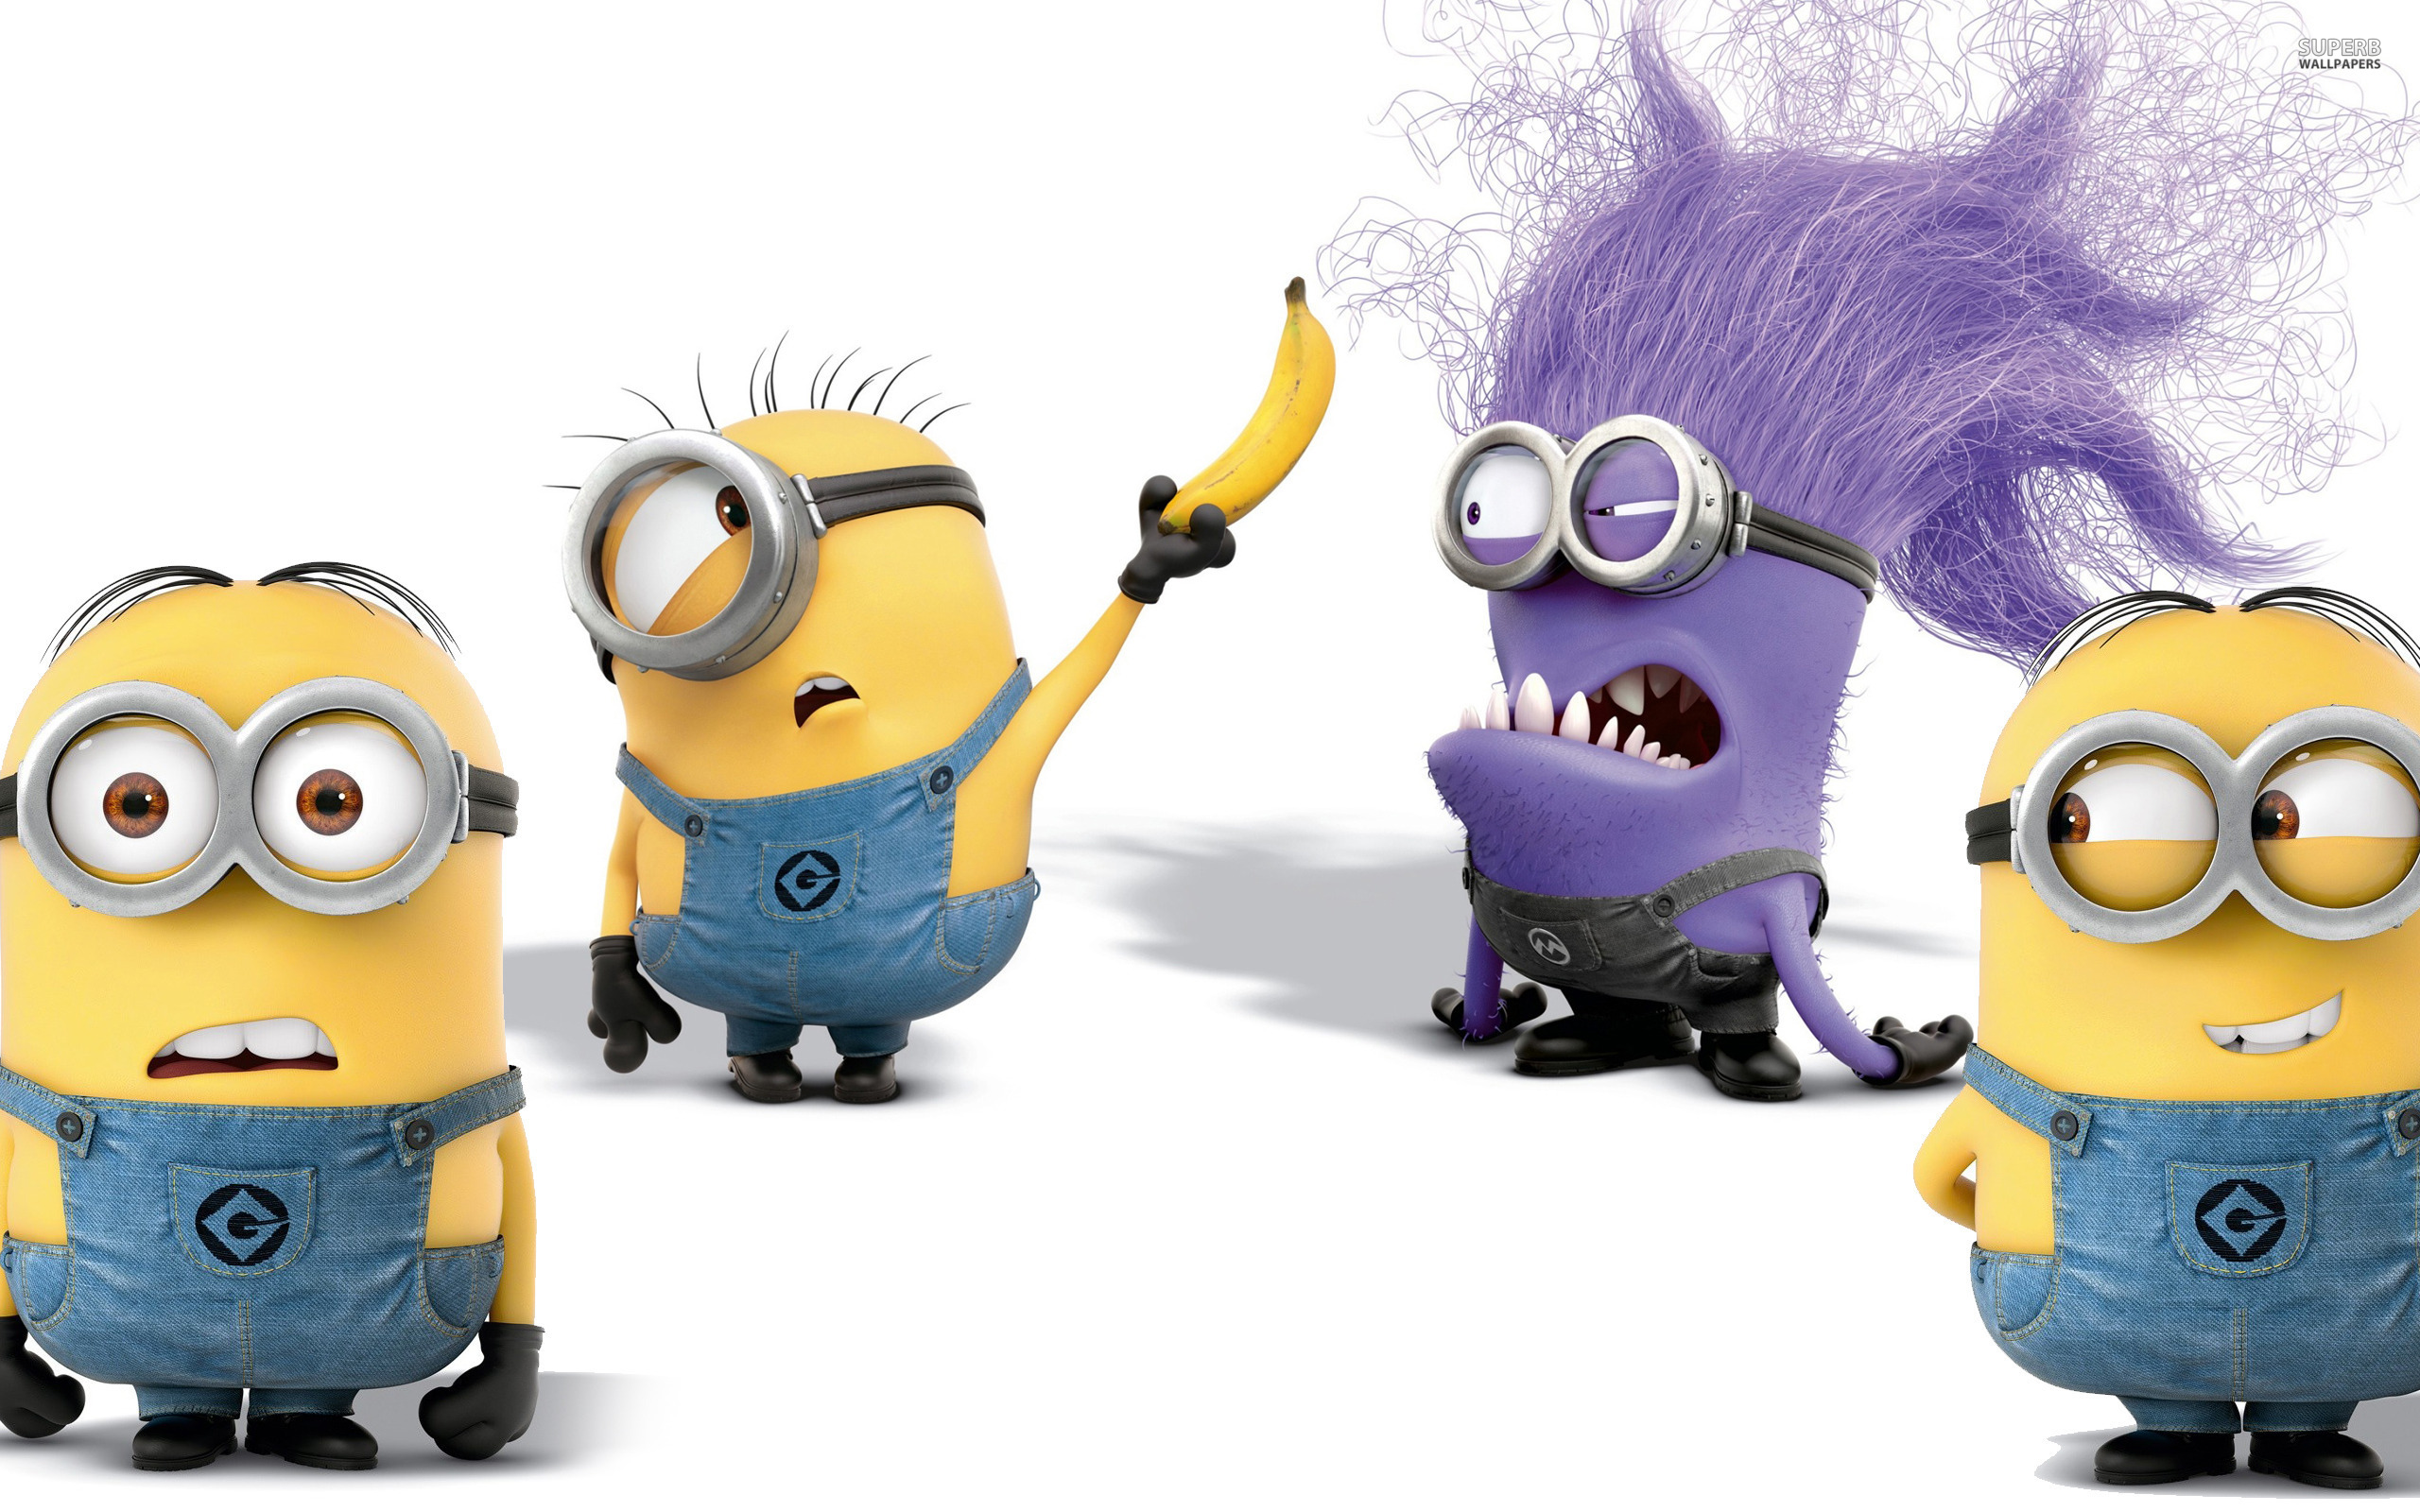 Minions - Despicable Me 2 wallpaper 2560x1600 jpg